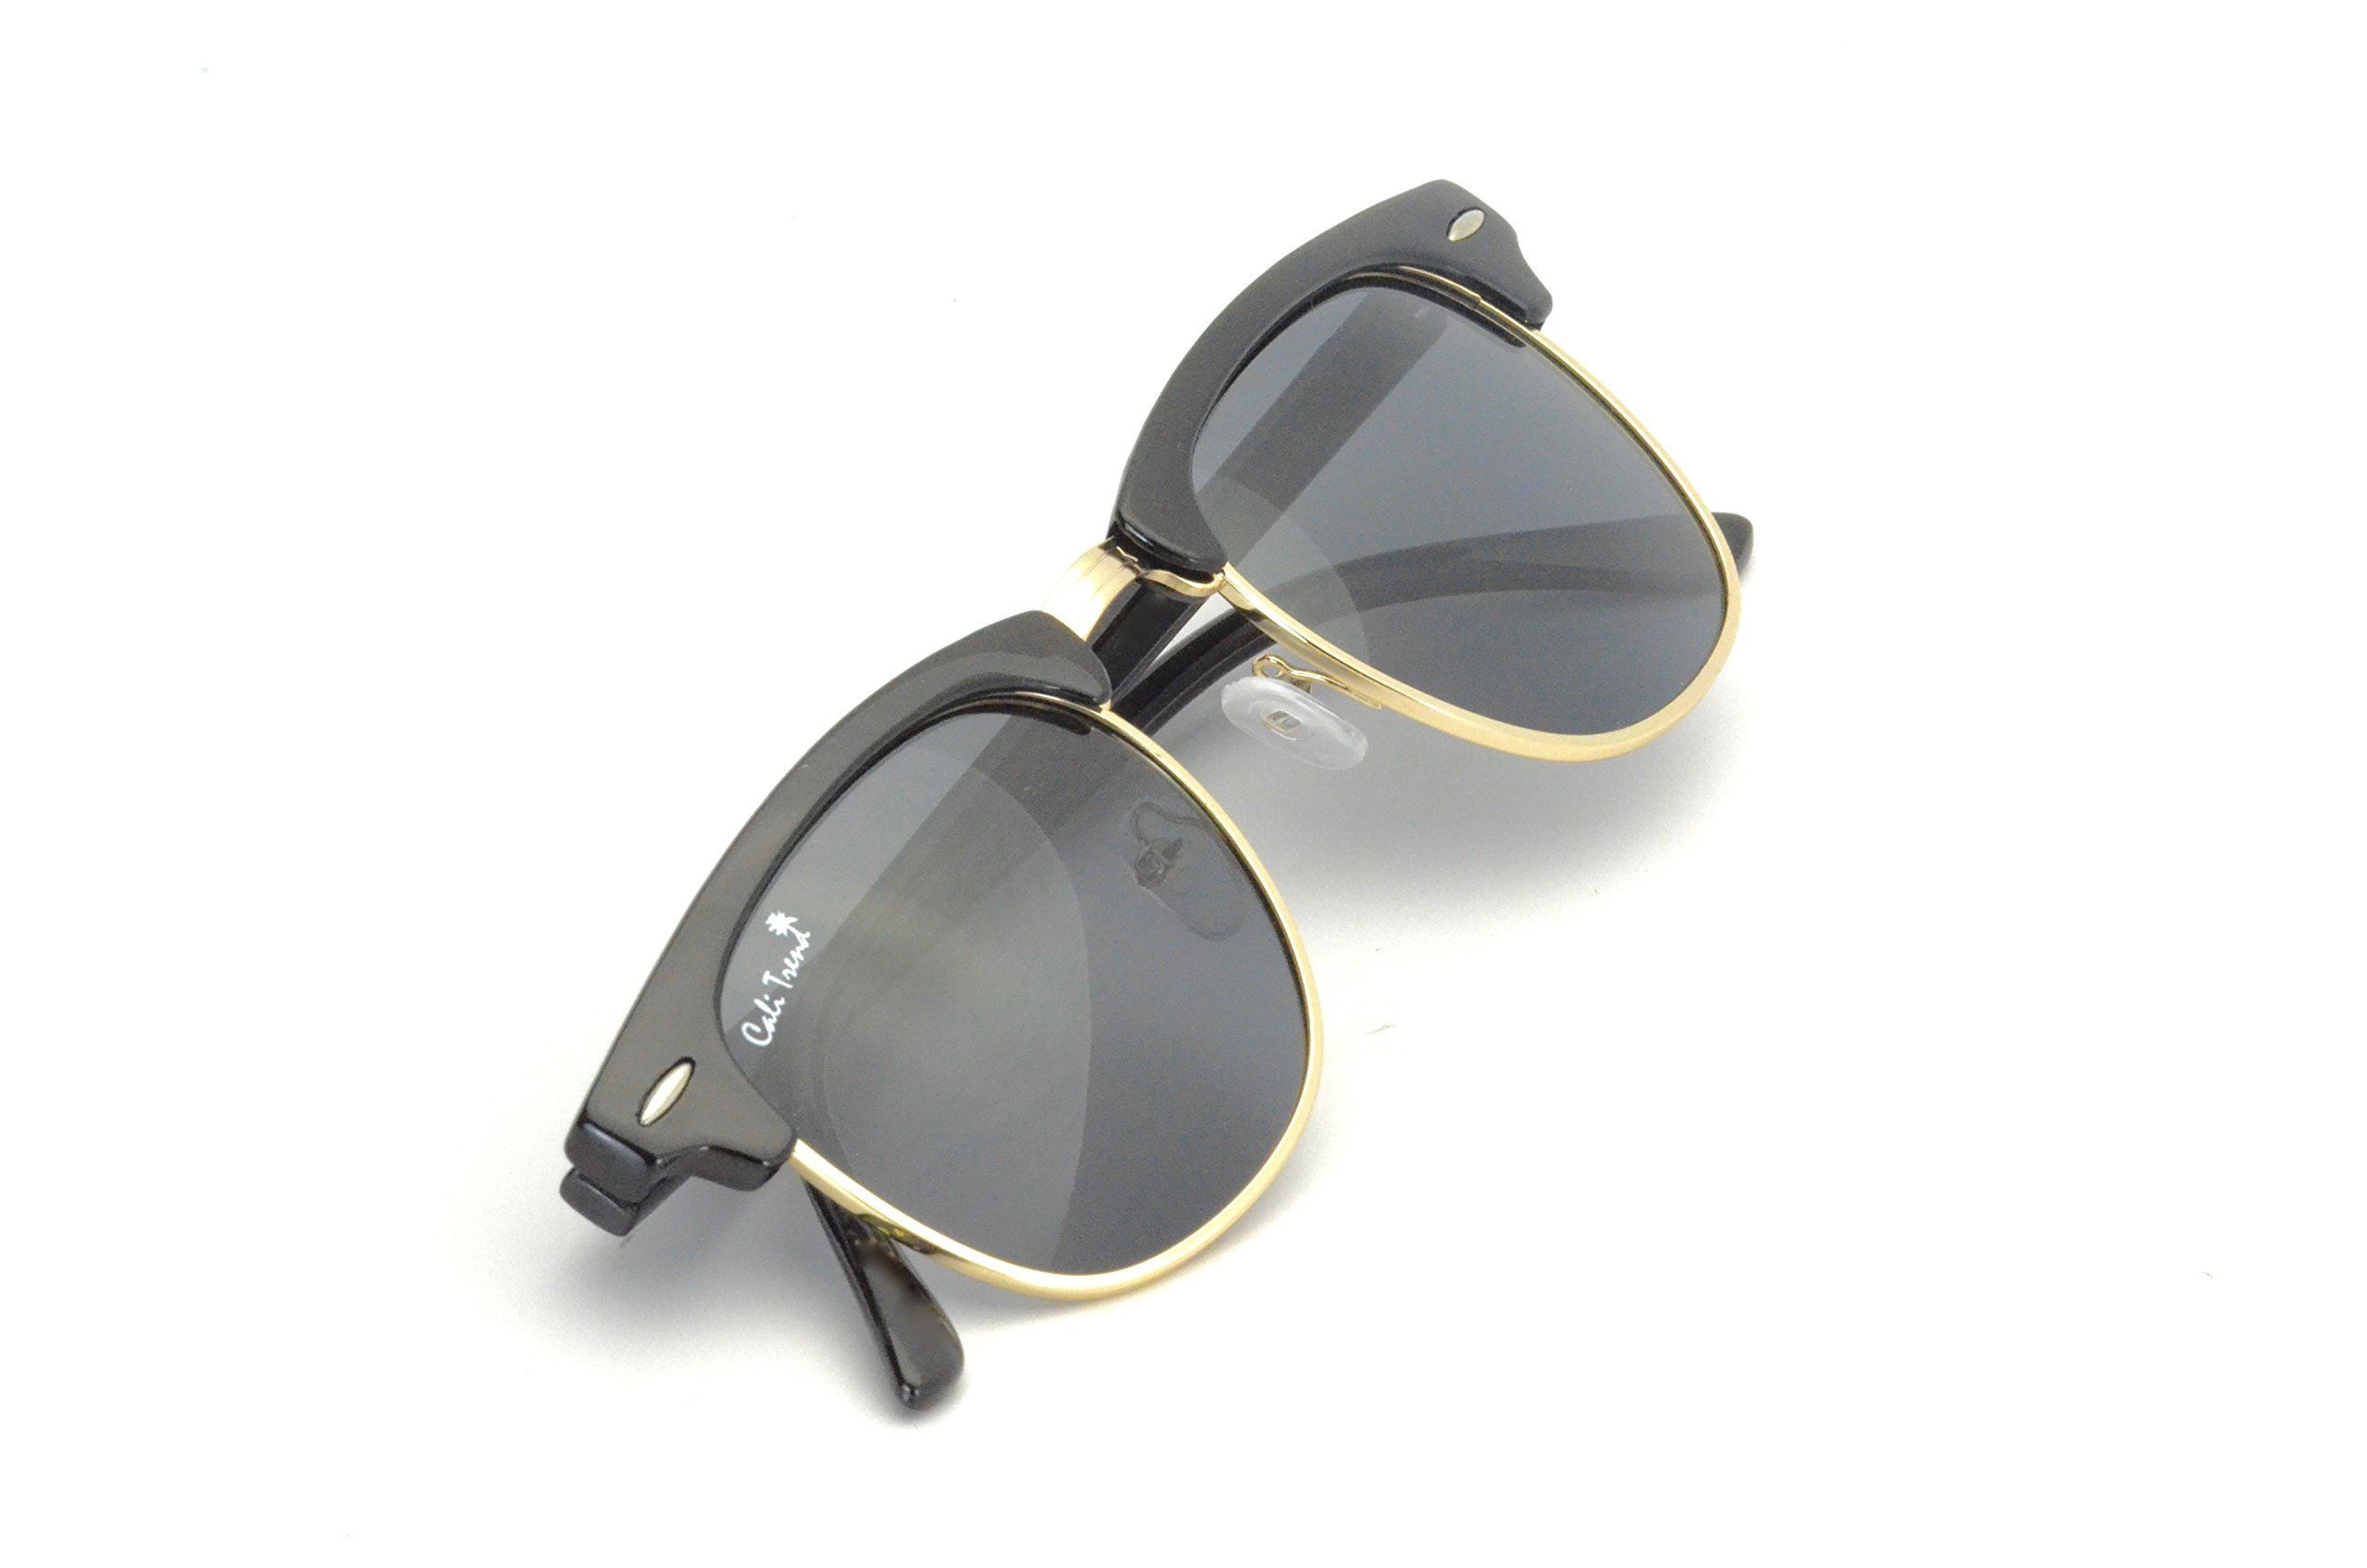 Polarized Half Frame Sunglasses - Clubmaster Style - Cool, Comfortable California Shades by Cali Trend